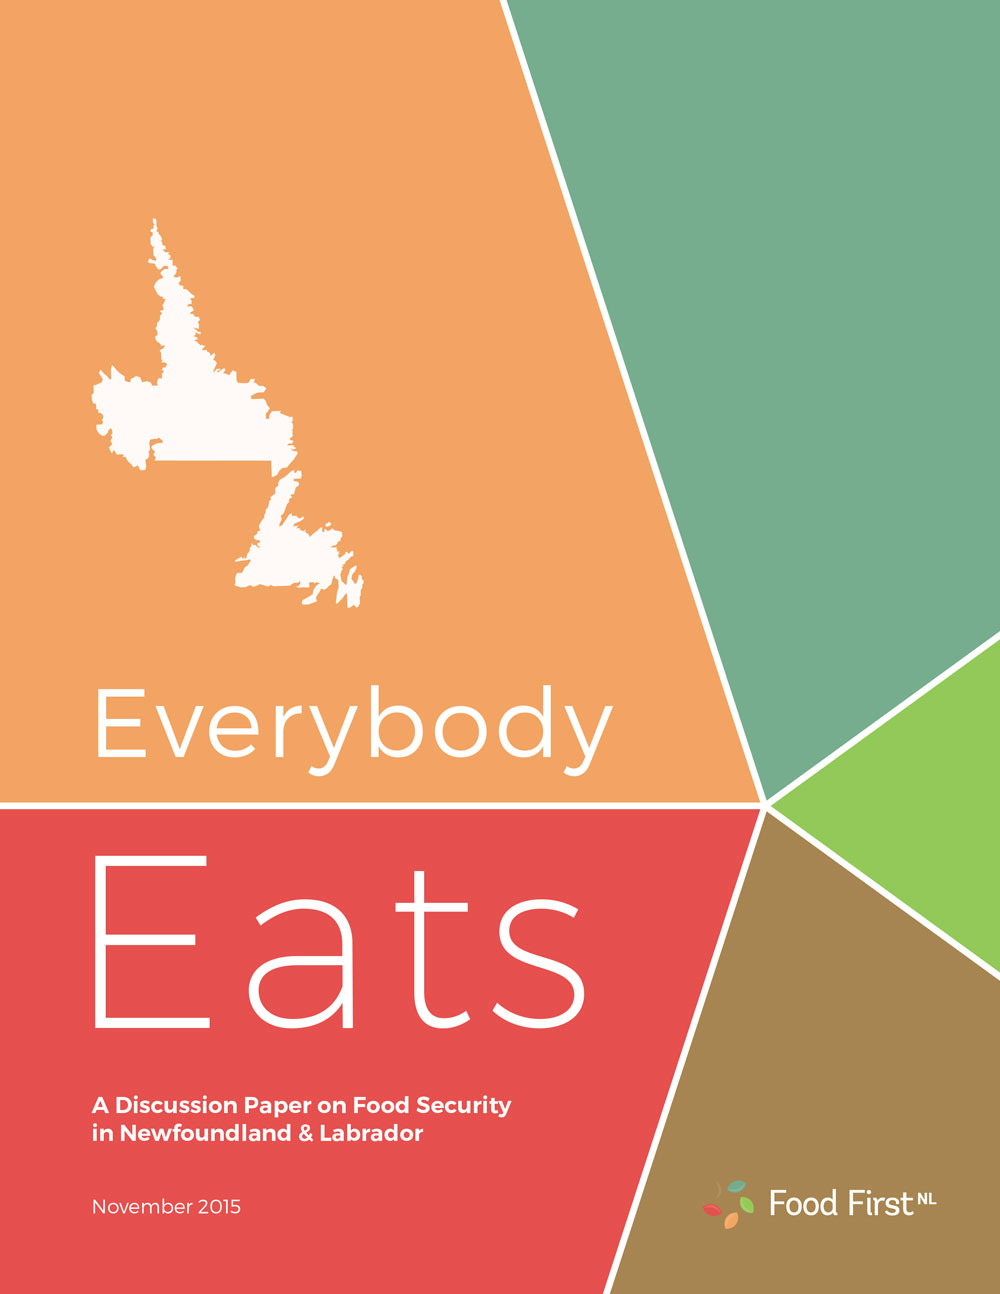 Everybody-Eats_NL-Discussion-Paper-2015-cover.jpg